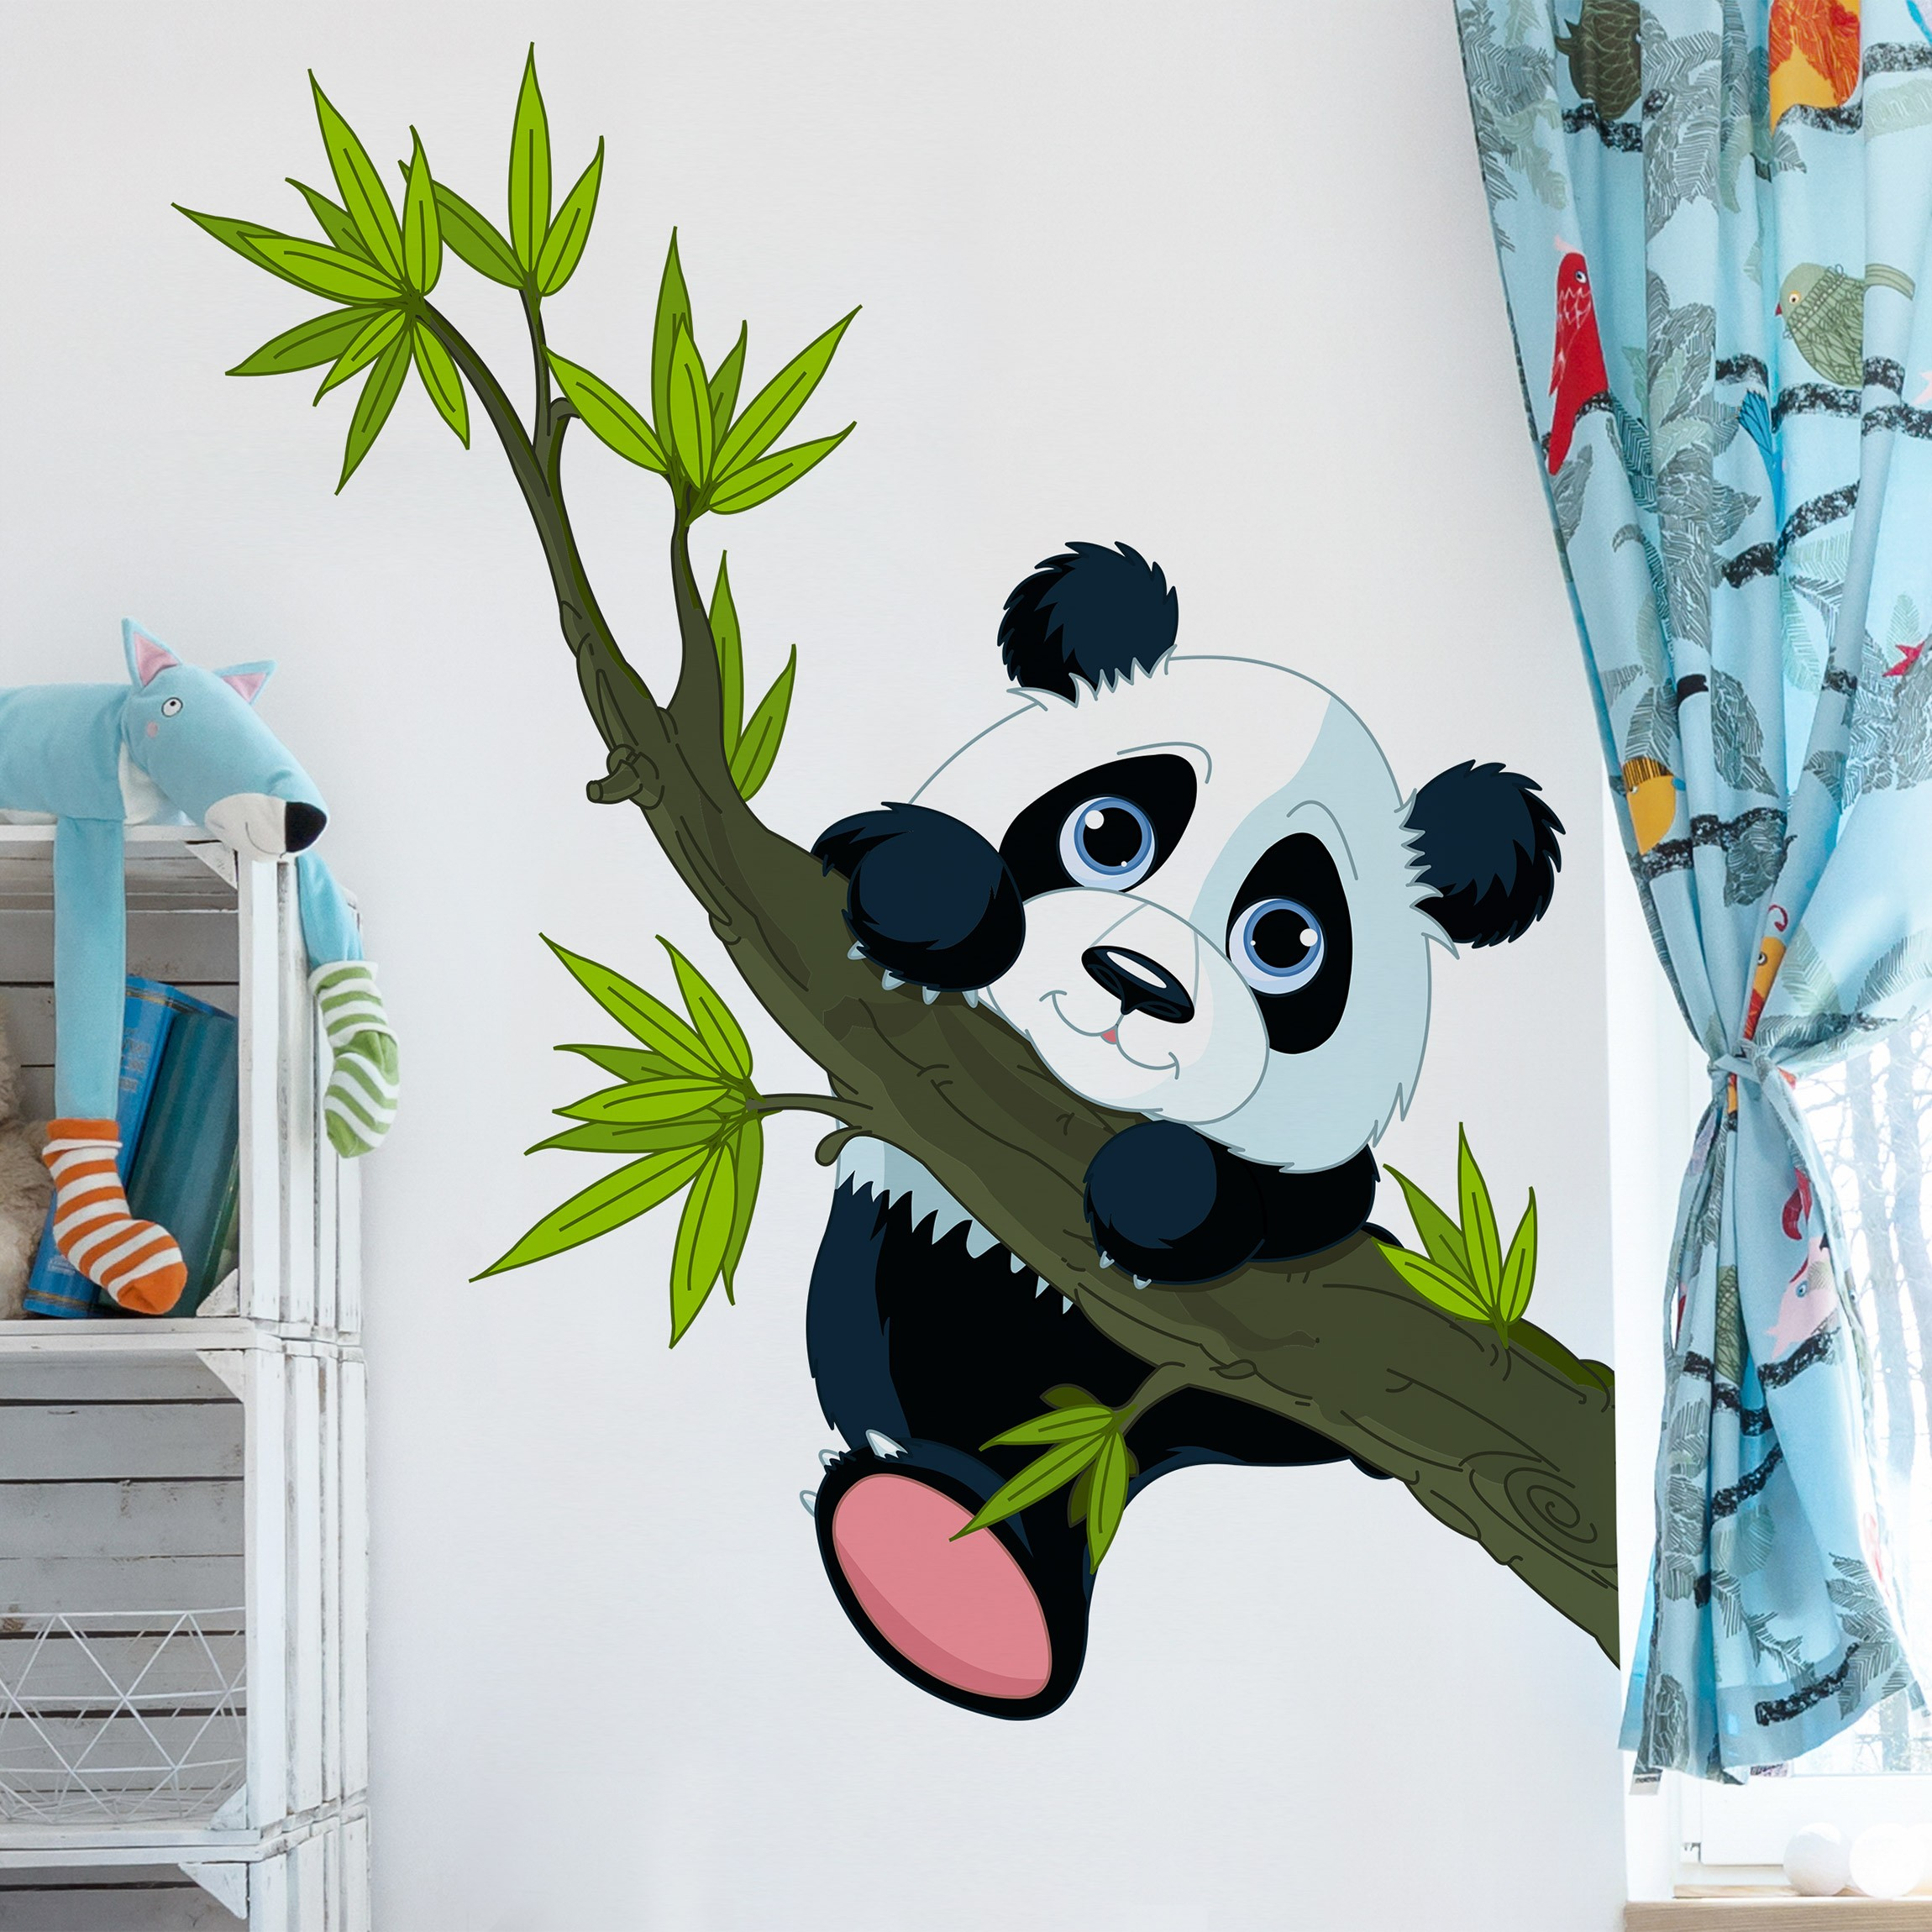 wandtattoo kinderzimmer kletternder panda. Black Bedroom Furniture Sets. Home Design Ideas